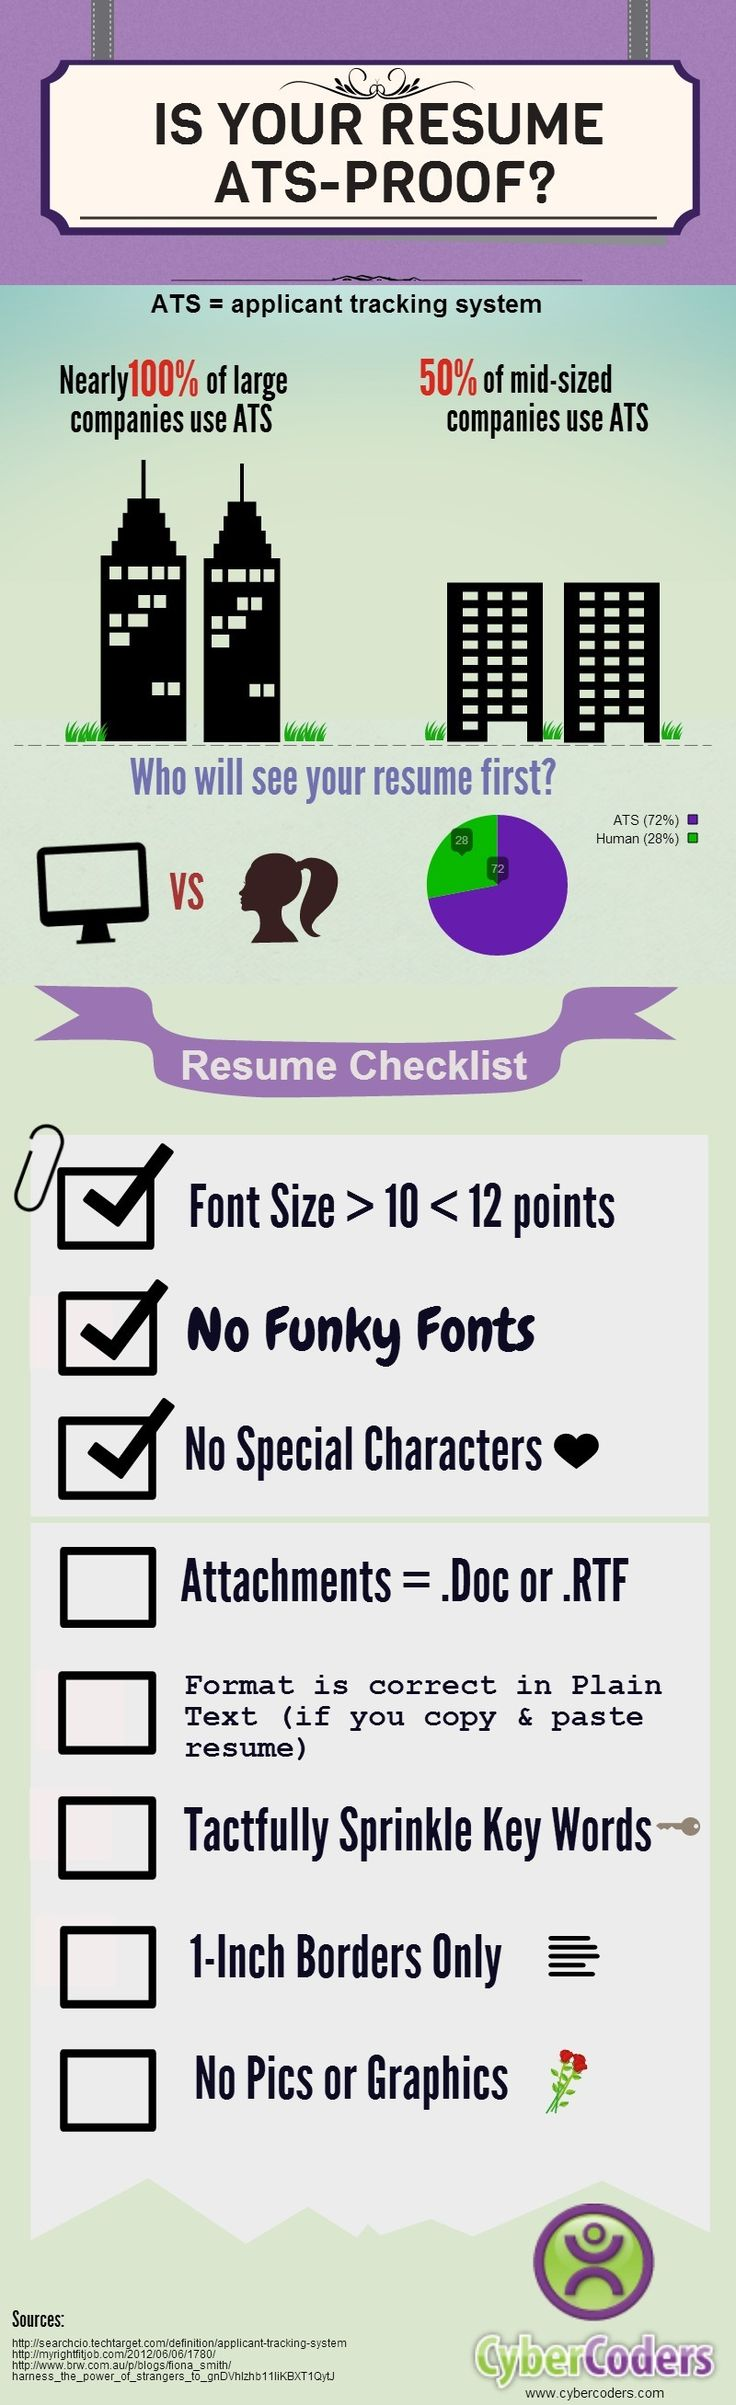 college resume on pinterest  a selection of the best ideas